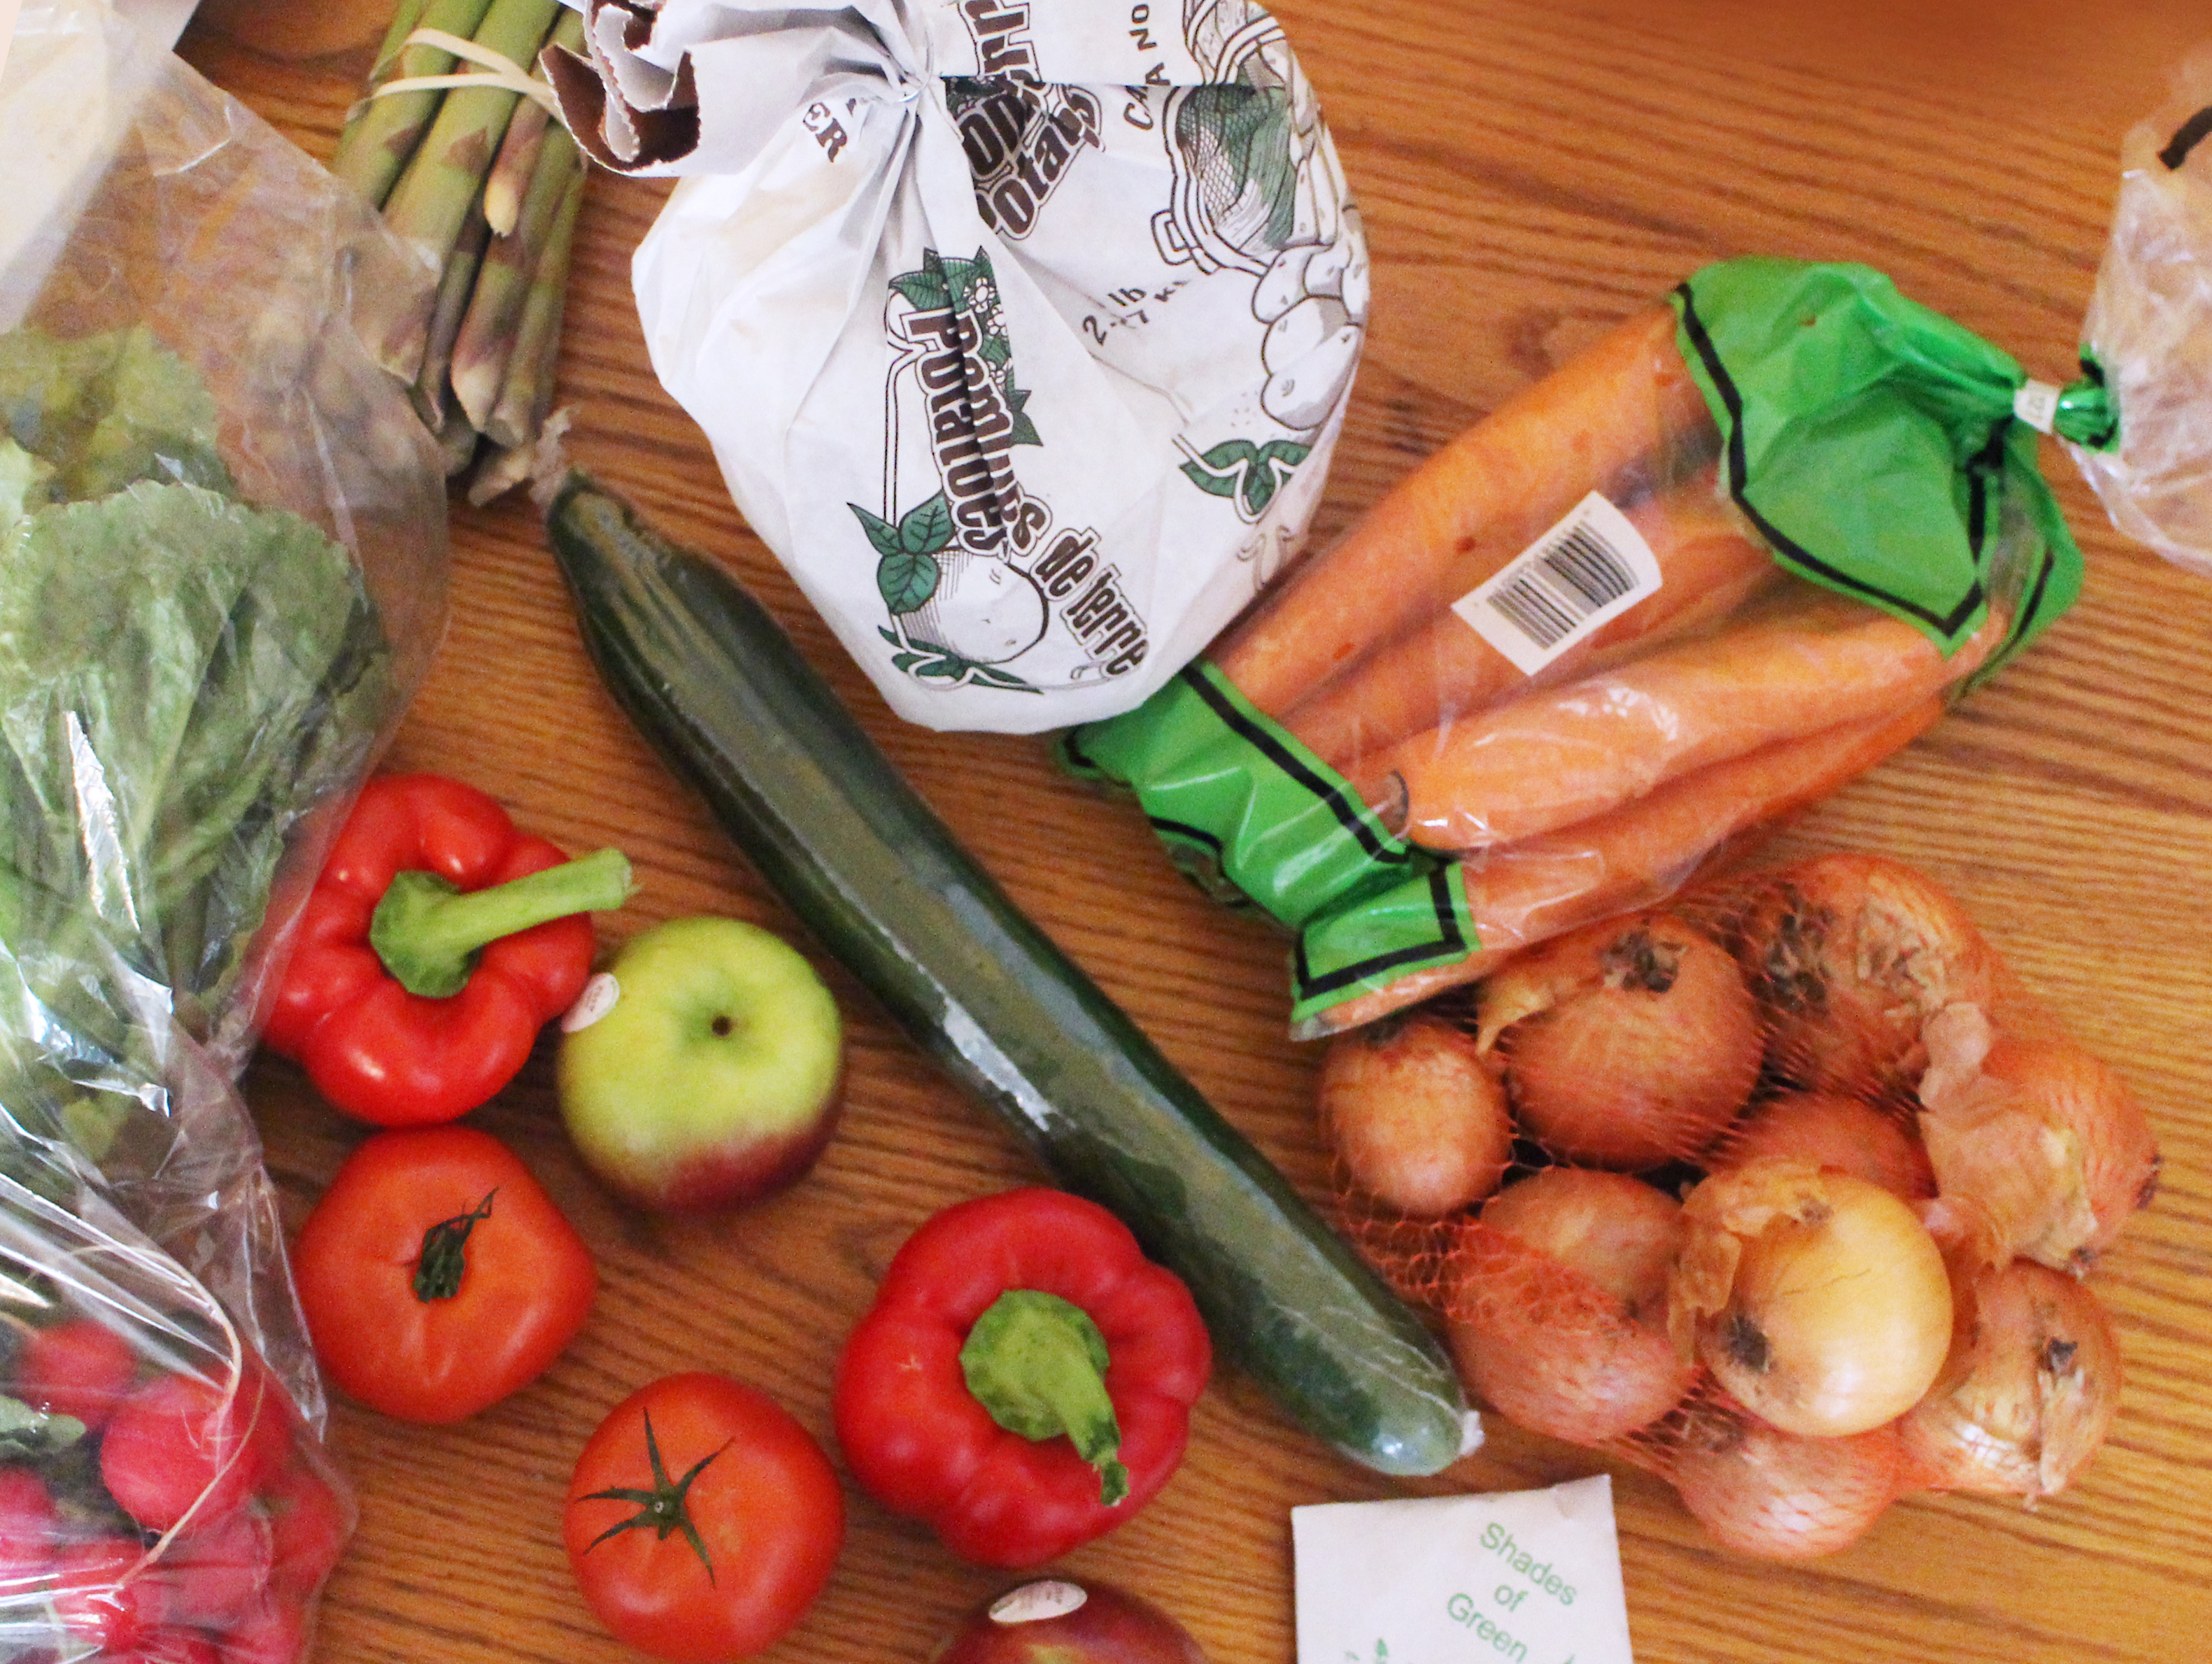 The Good Food Box Network by Environment Hamilton | The Inlet Online Arts and Culture Blog | Hamilton, Ontario Photo 1